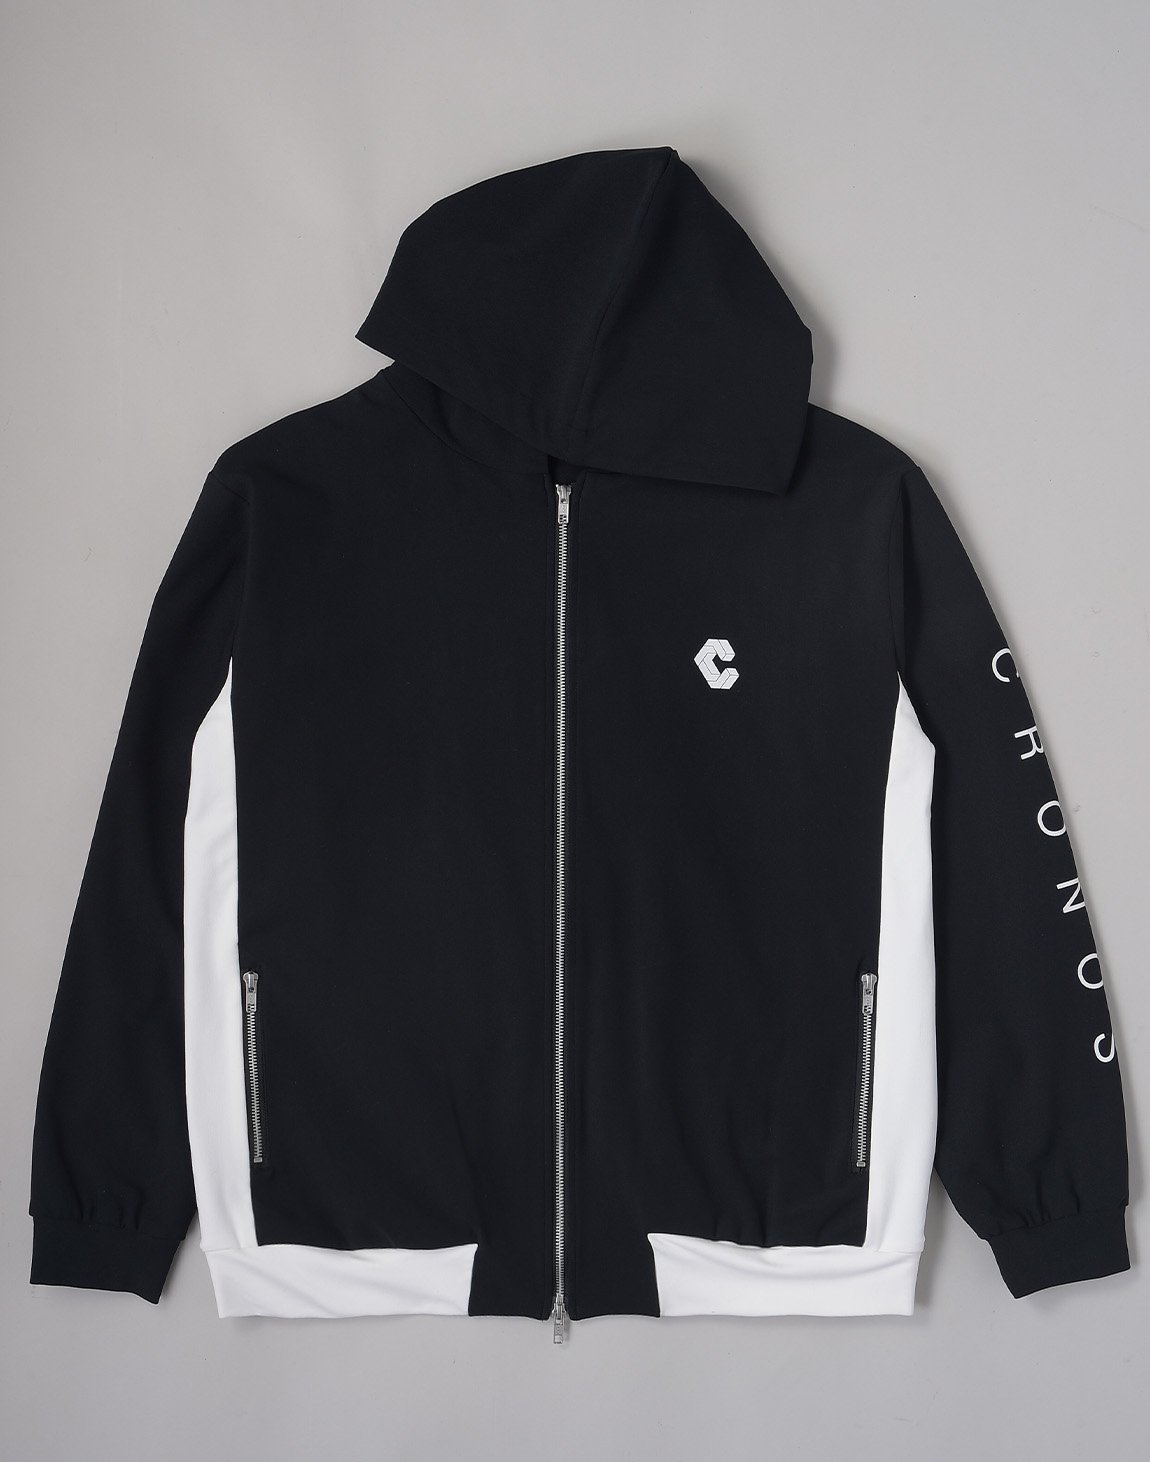 <img class='new_mark_img1' src='https://img.shop-pro.jp/img/new/icons1.gif' style='border:none;display:inline;margin:0px;padding:0px;width:auto;' />CRONOS ARM LOGO HOODED BLOUSON【BLACK】